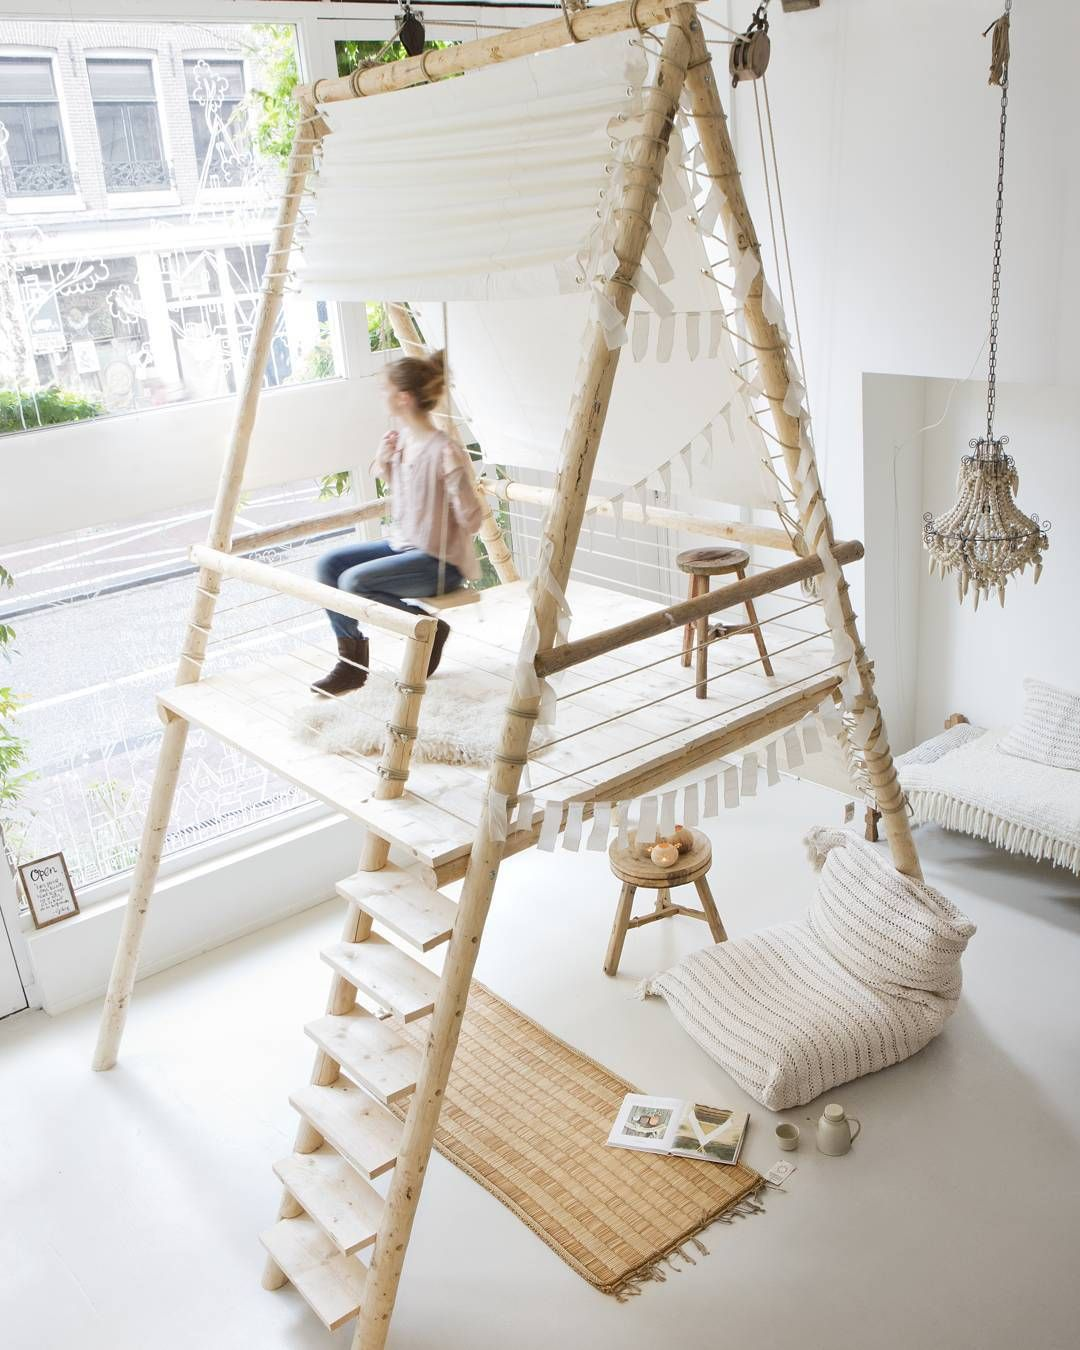 via @sukhaamsterdam on Instagram | Play houses, Room decor ...